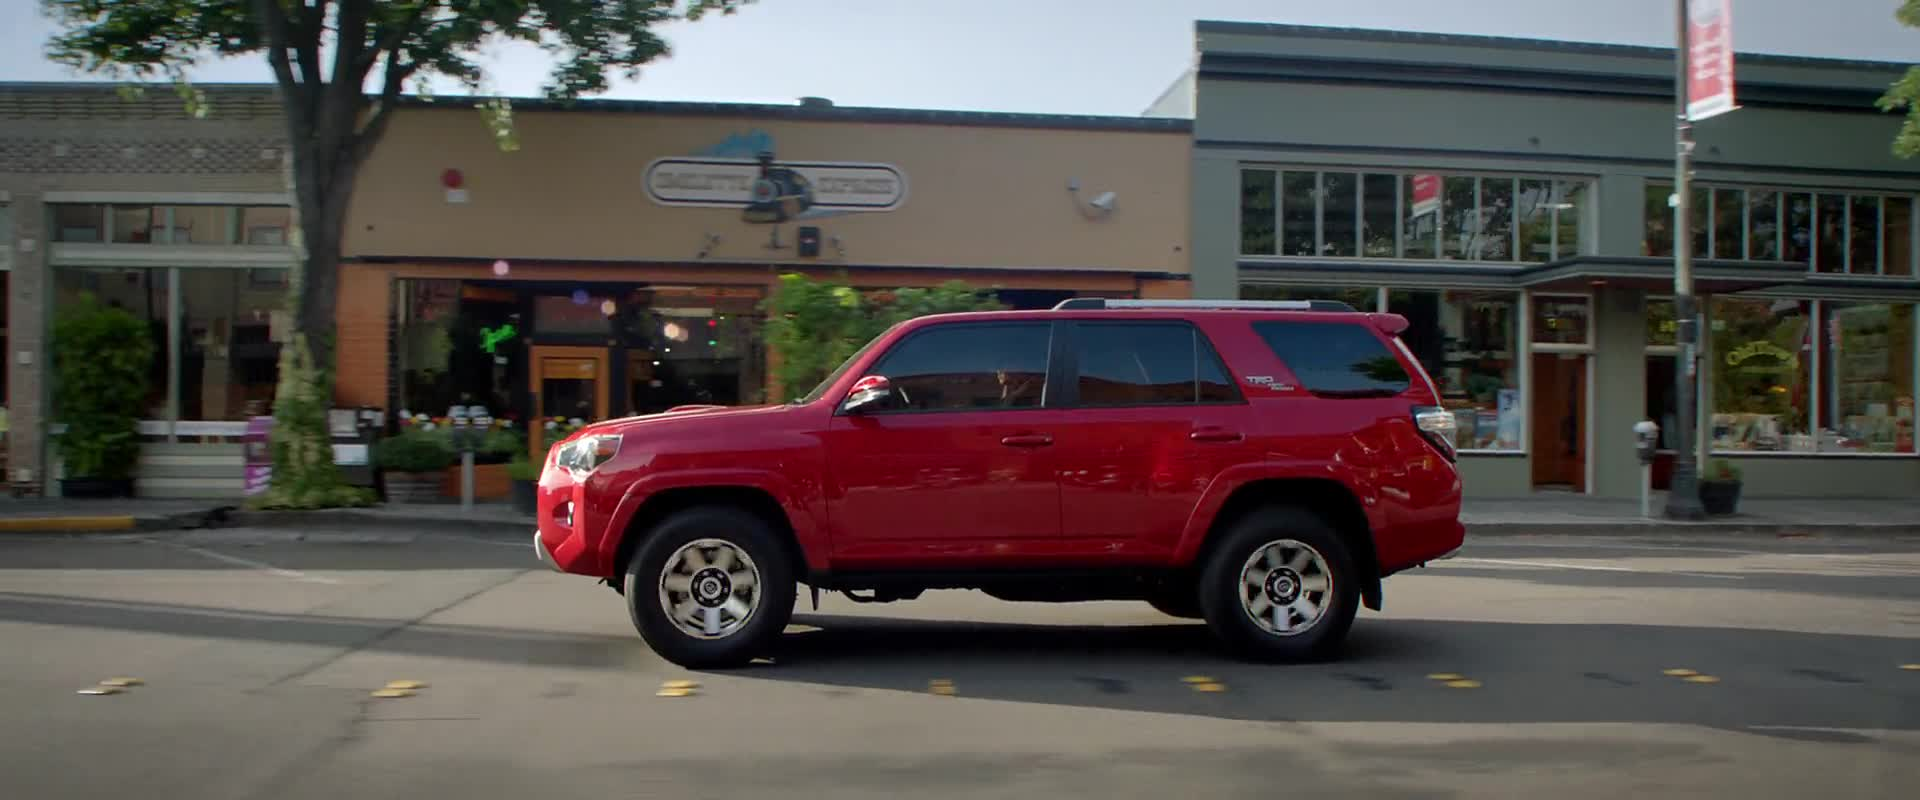 Toyota dealer burlington wa new used cars for sale near bellingham wa foothills toyota